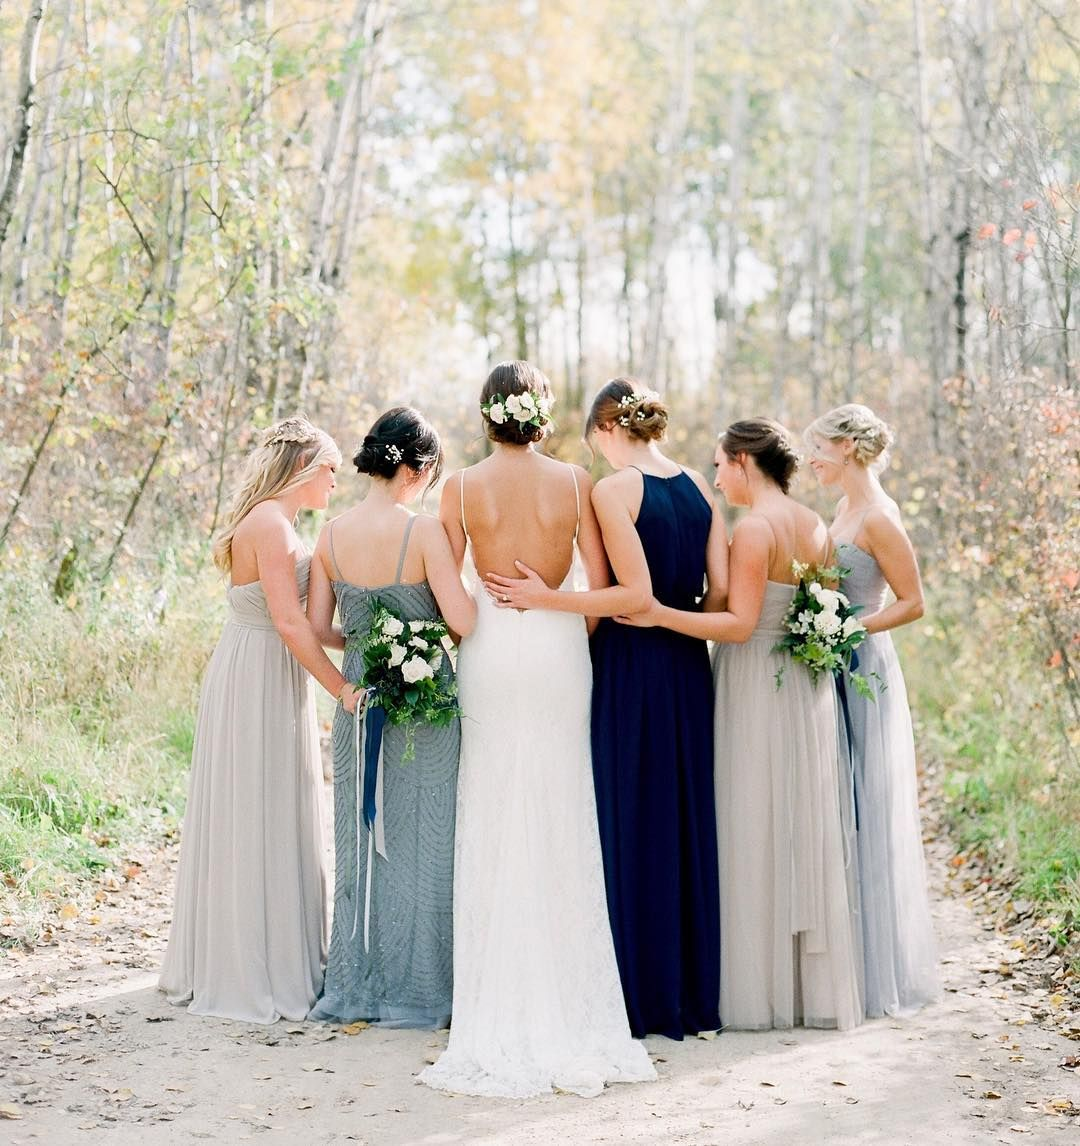 12 of the most swoon inducing mismatched bridesmaid dress looks on 12 of the most swoon inducing mismatched bridesmaid dress looks on insta ombrellifo Gallery